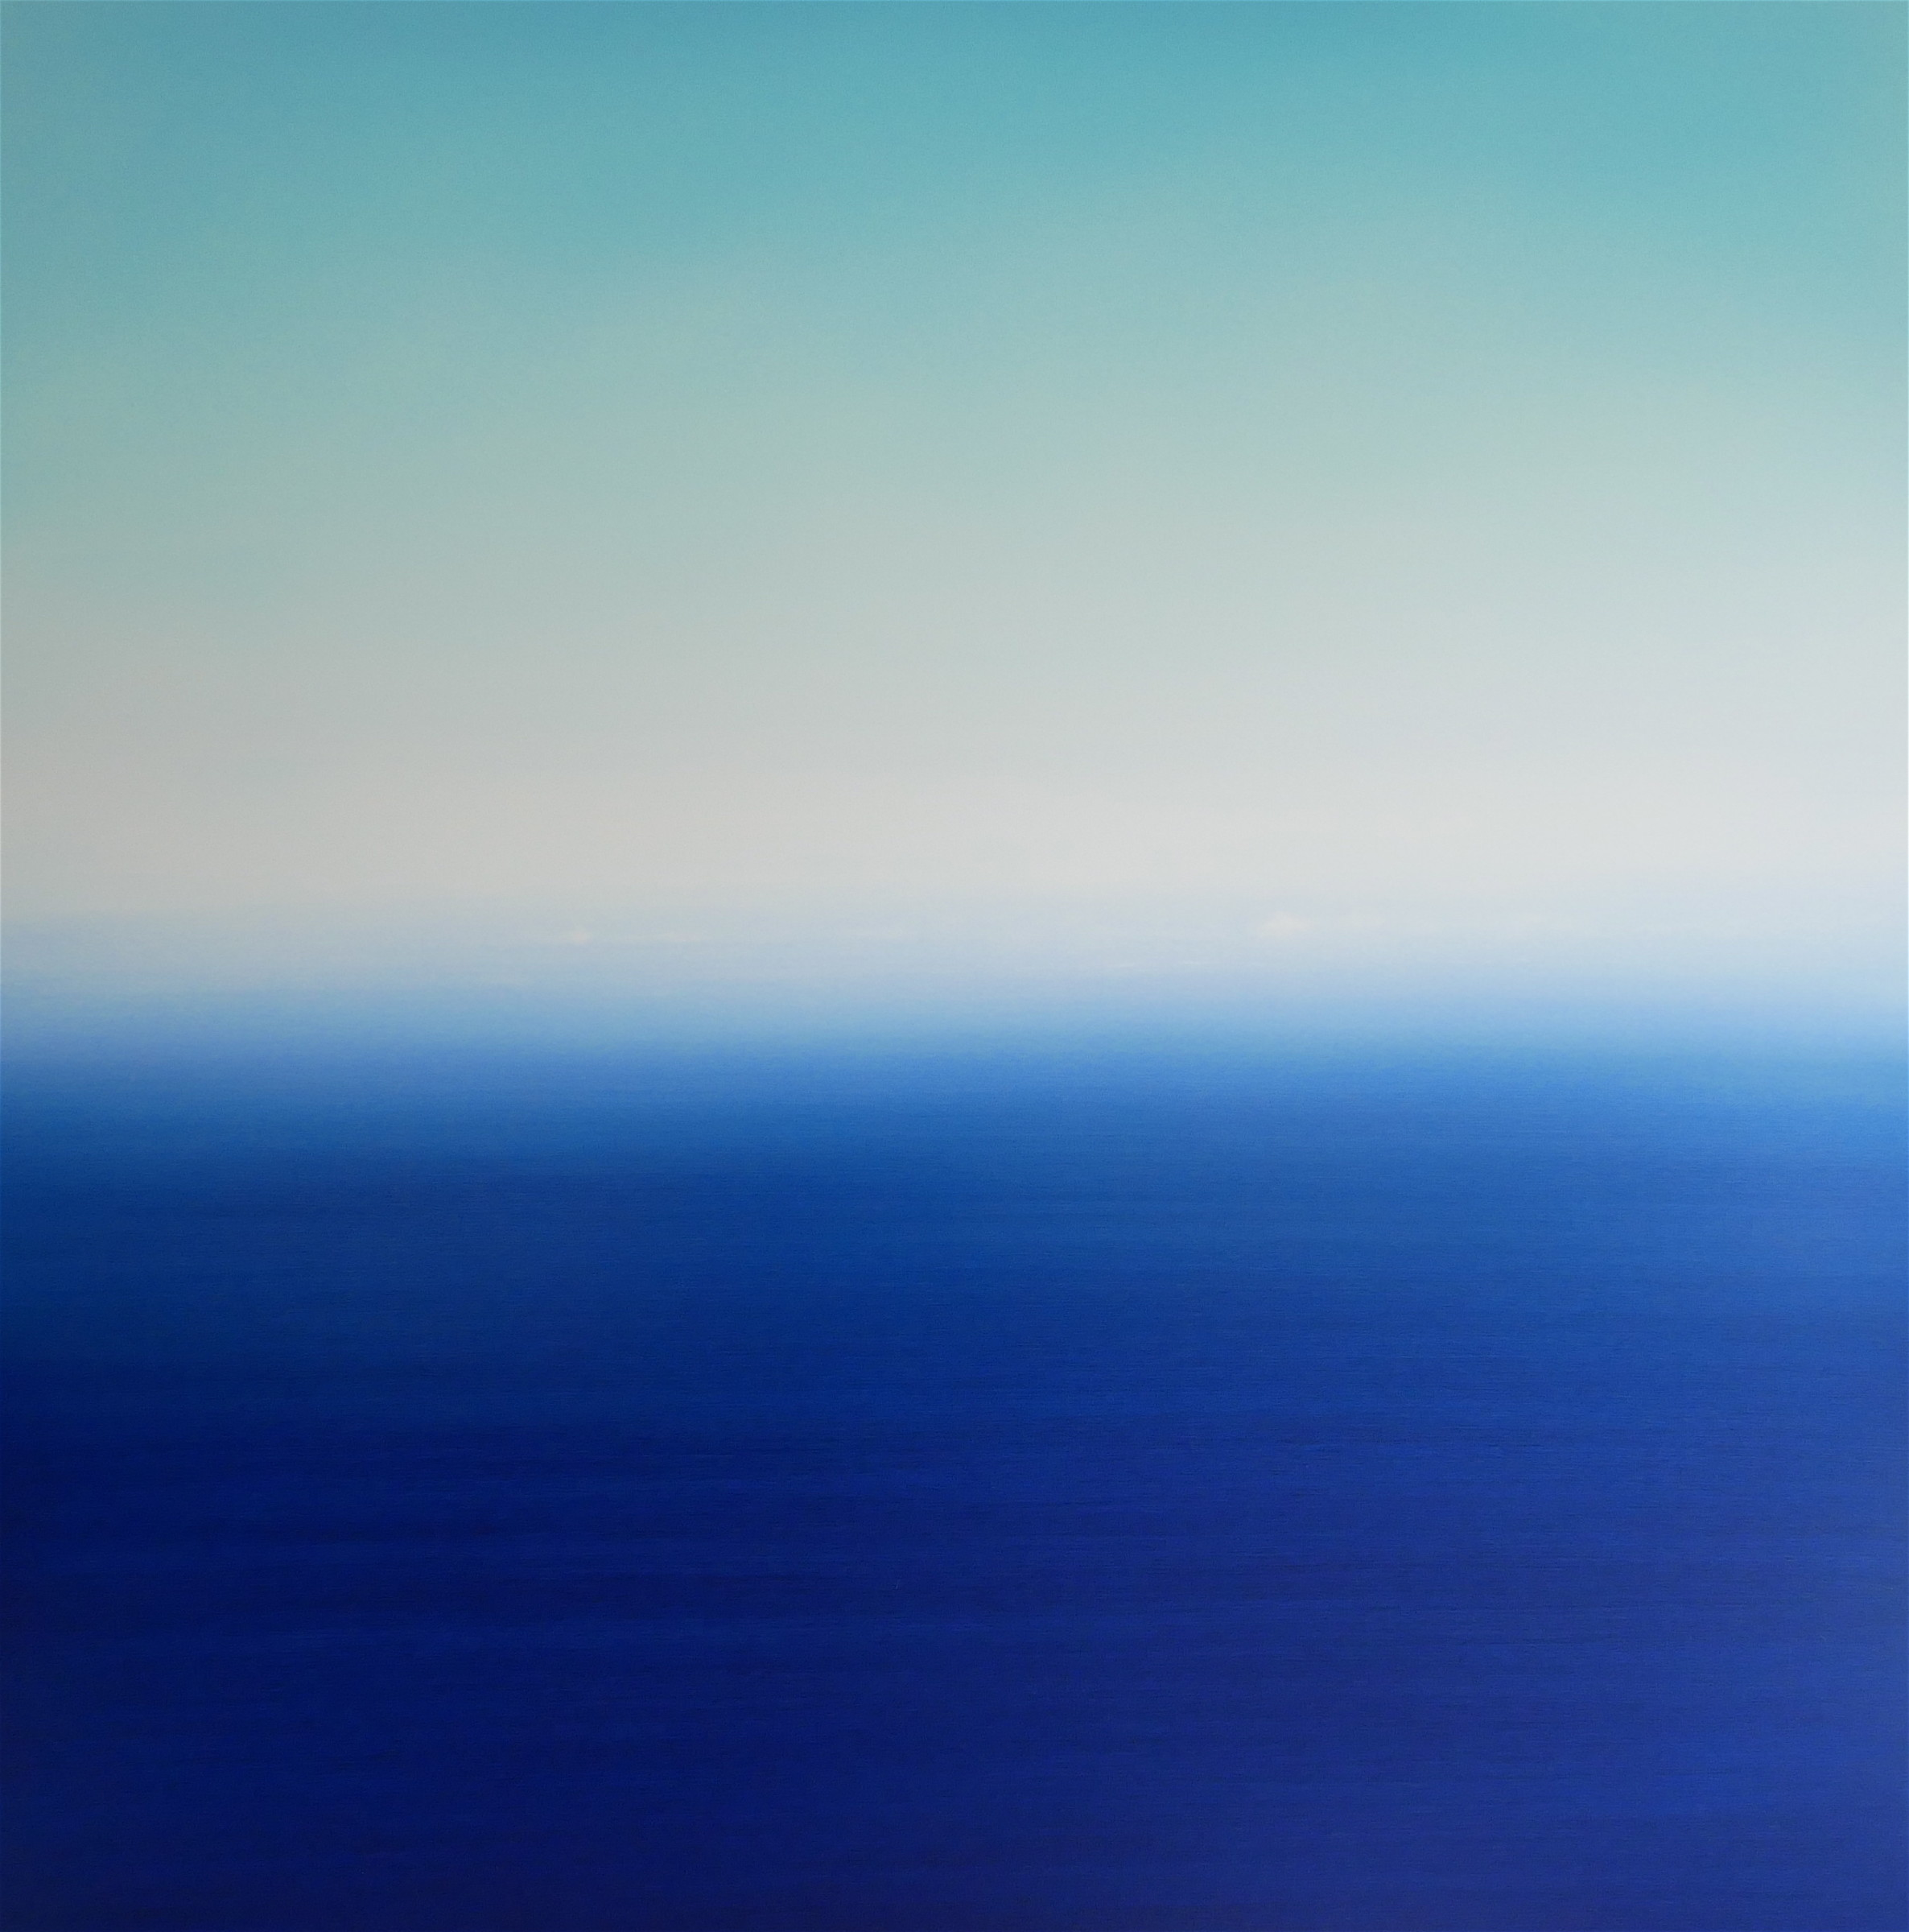 "<span class=""link fancybox-details-link""><a href=""/artists/78-martyn-perryman/works/6290-martyn-perryman-atlantic-haze-st-ives-2019/"">View Detail Page</a></span><div class=""artist""><strong>Martyn Perryman</strong></div> <div class=""title""><em>Atlantic Haze, St Ives</em>, 2019</div> <div class=""signed_and_dated"">Signed on the reverse</div> <div class=""medium"">Oil on Canvas</div> <div class=""dimensions"">120 x 120cm</div><div class=""copyright_line"">Own Art, £165 x 10 months, 0% APR</div>"